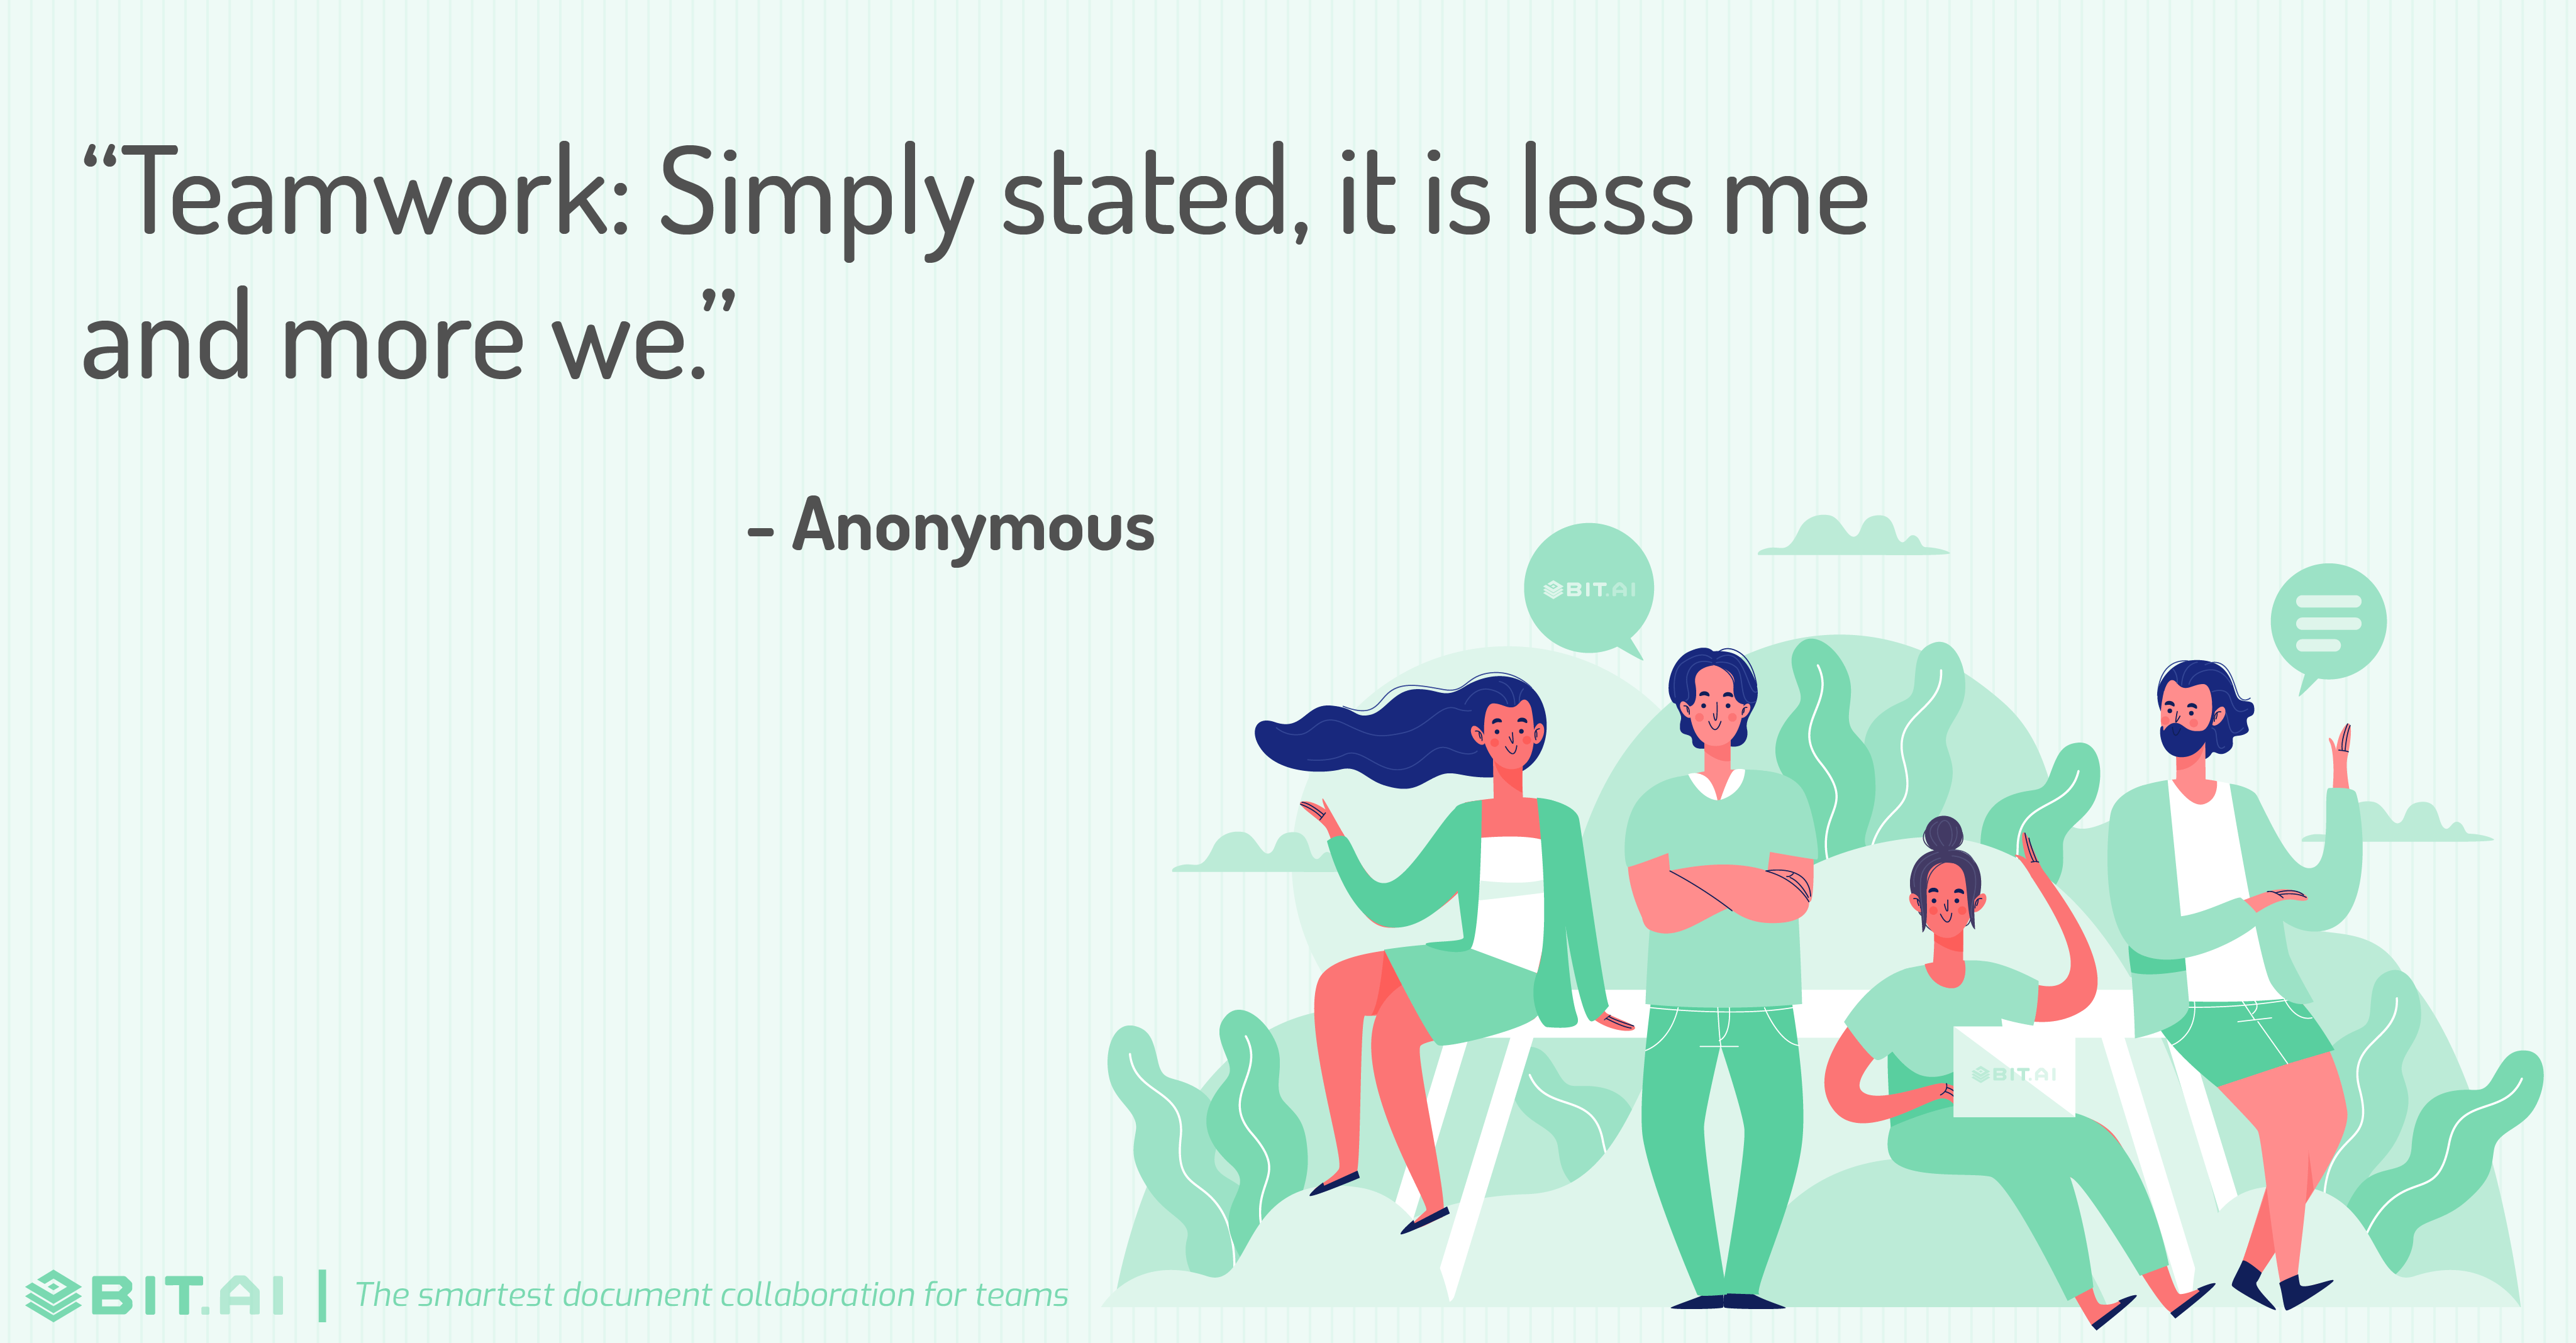 """Teamwork: Simply stated, it is less me and more we."" - Anonymous"